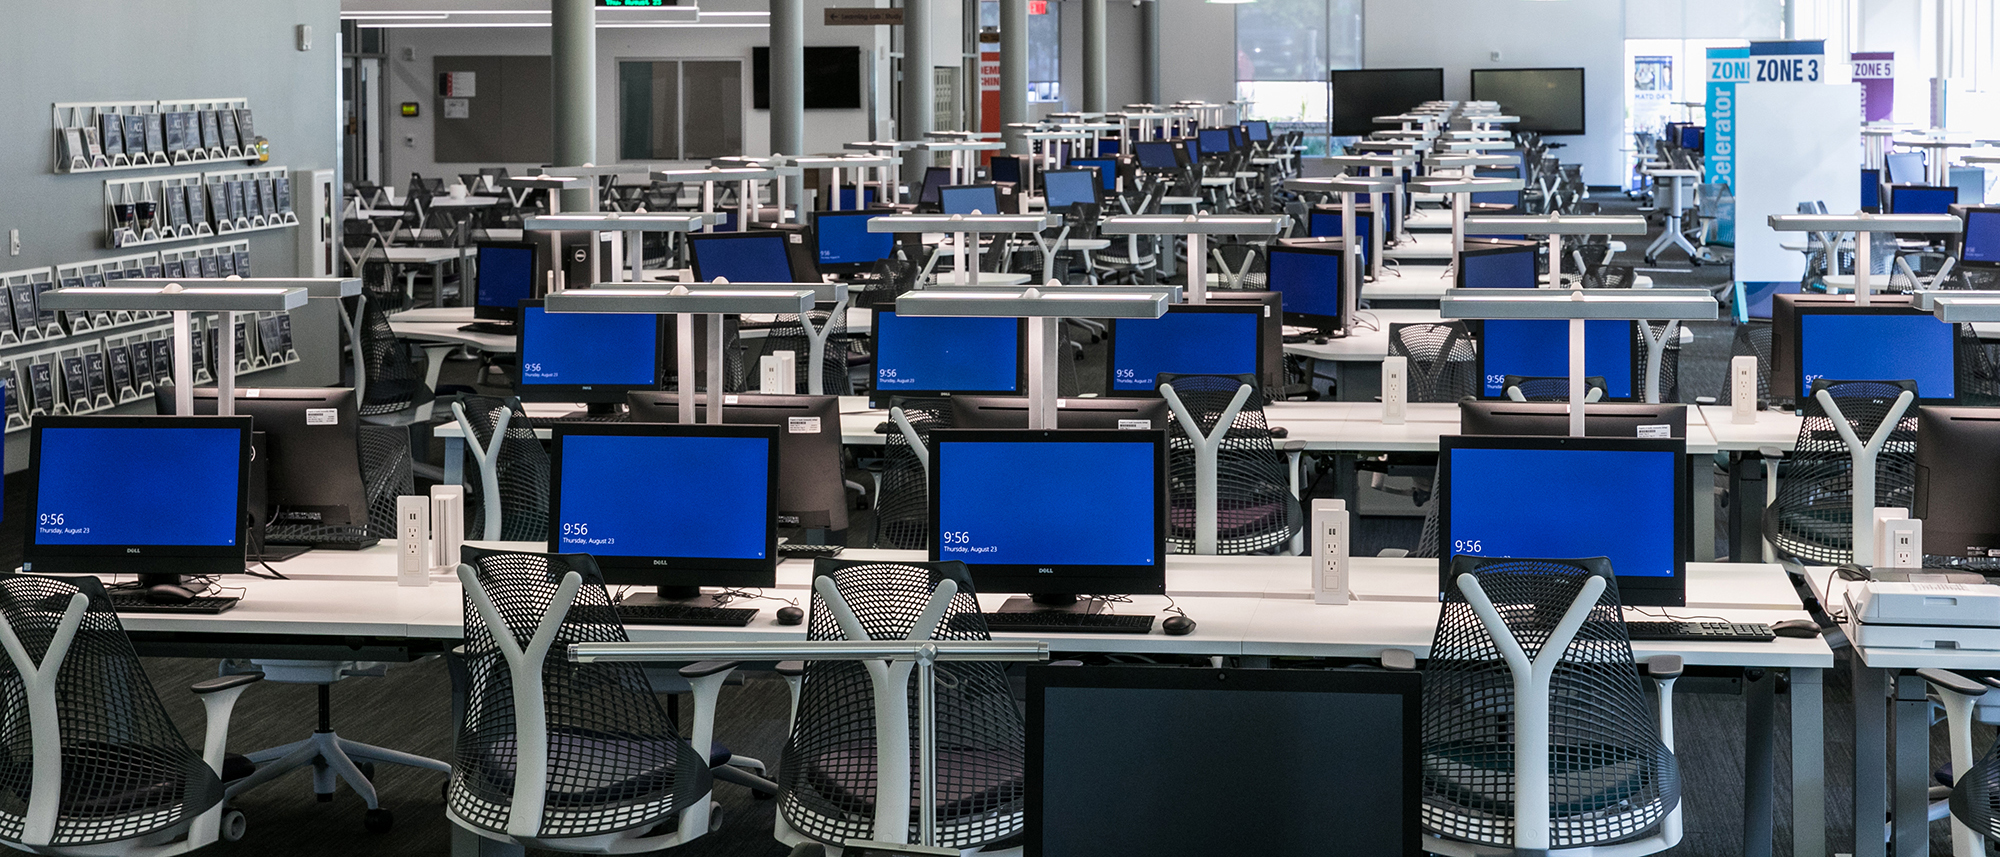 Rows of computer monitors